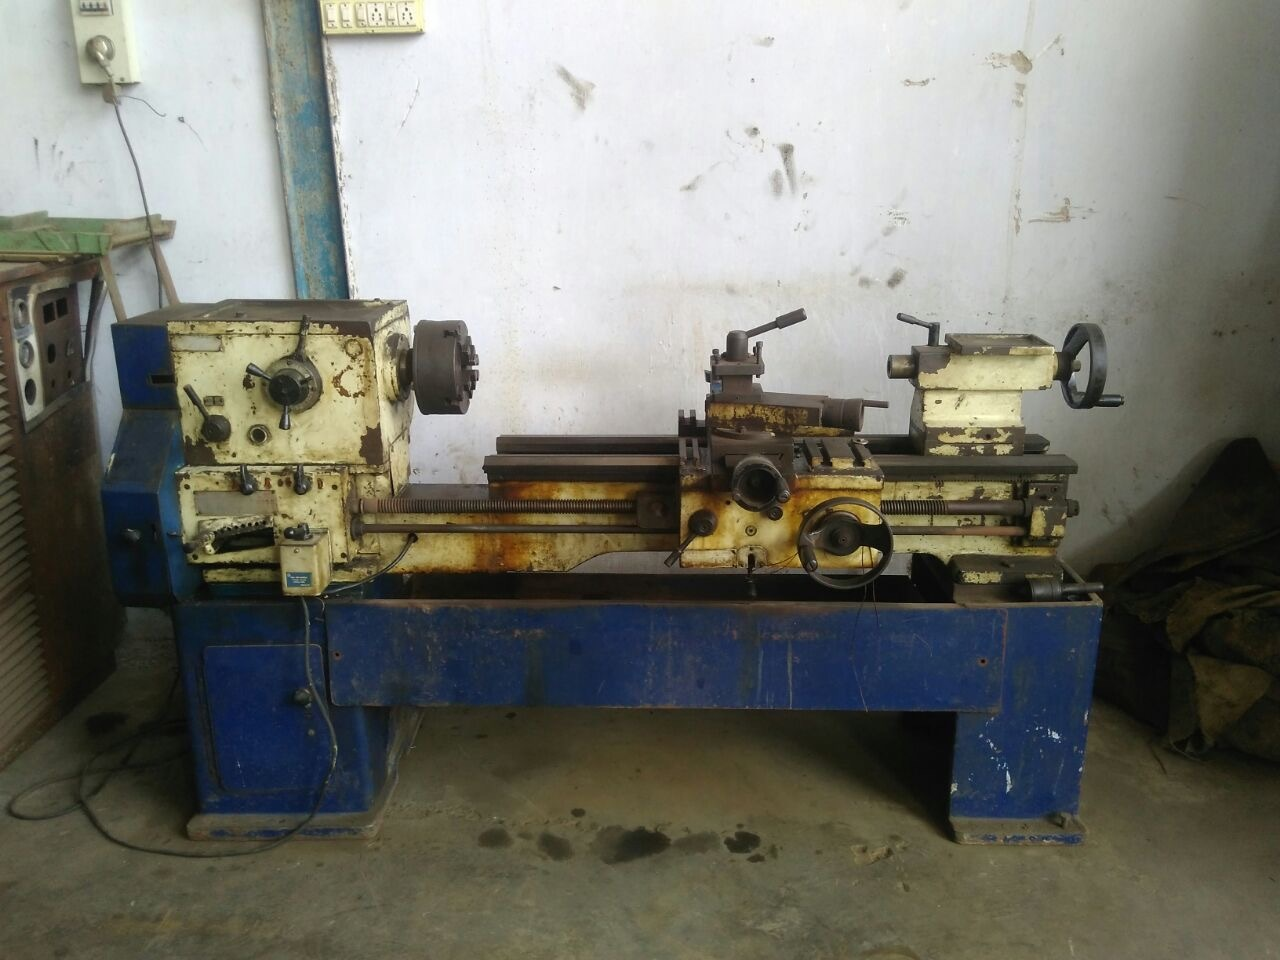 Lathe Machine - All gears